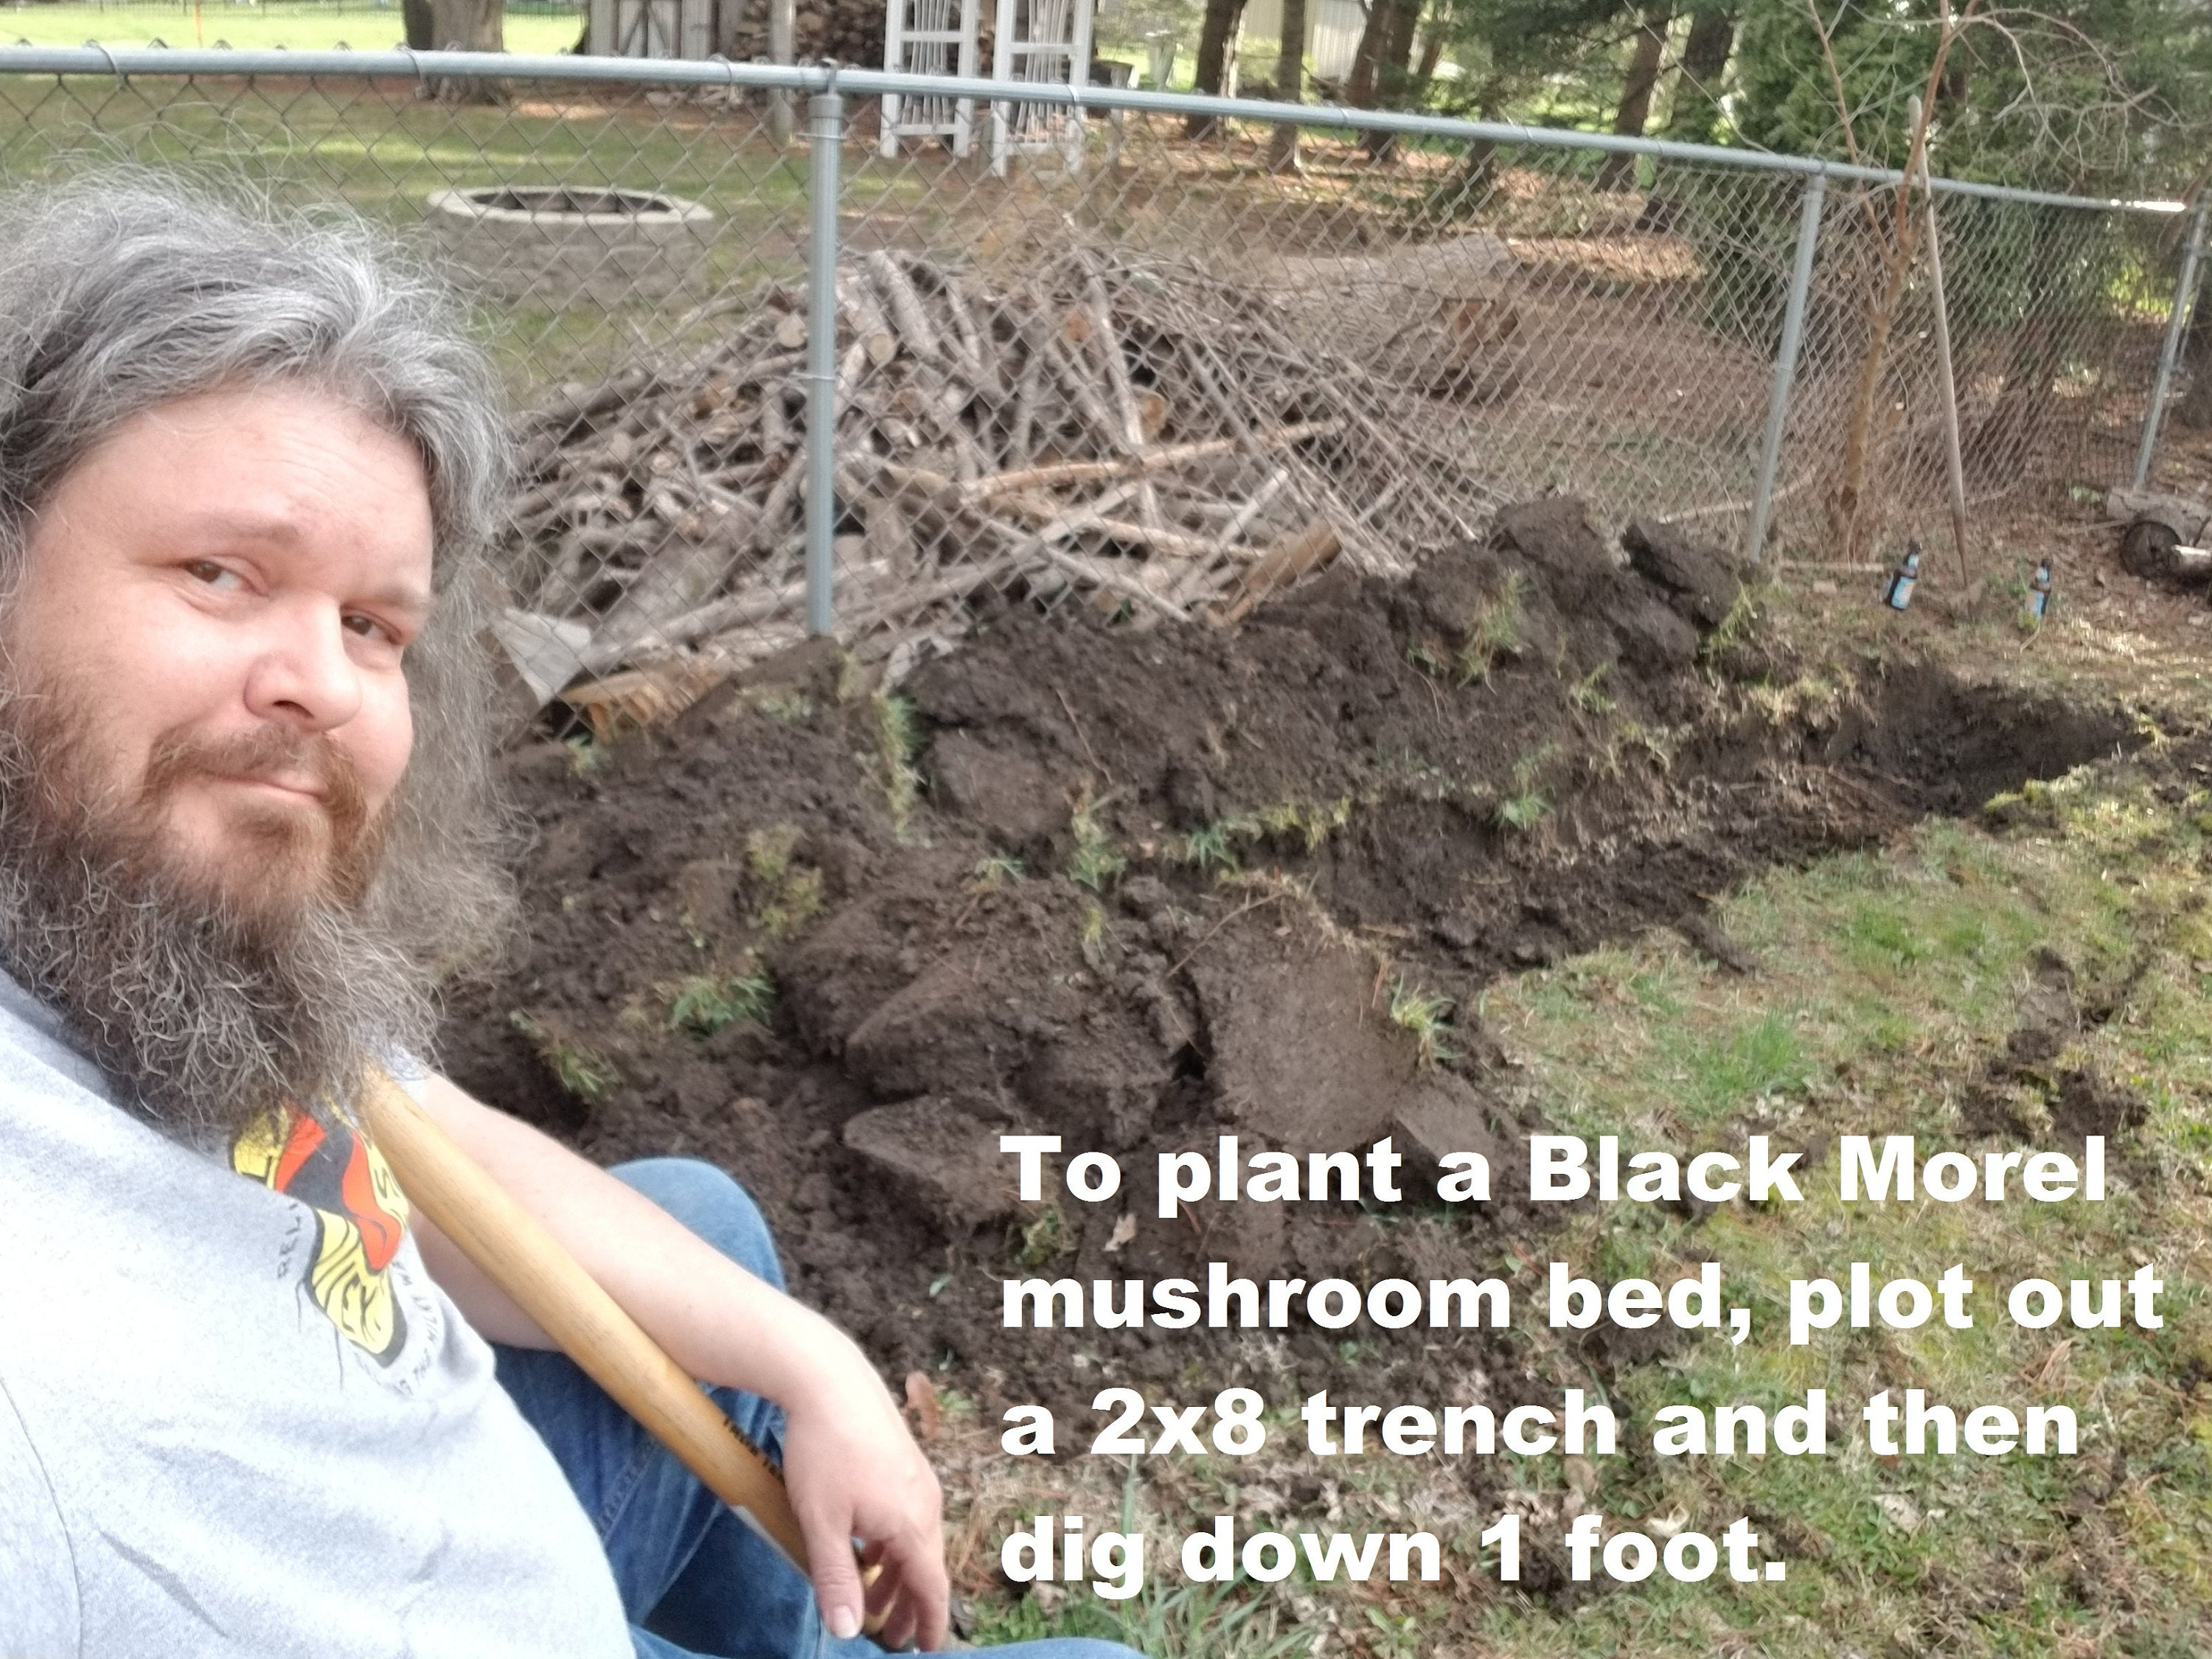 Planting morel spawn, step 1: The author takes a breather.